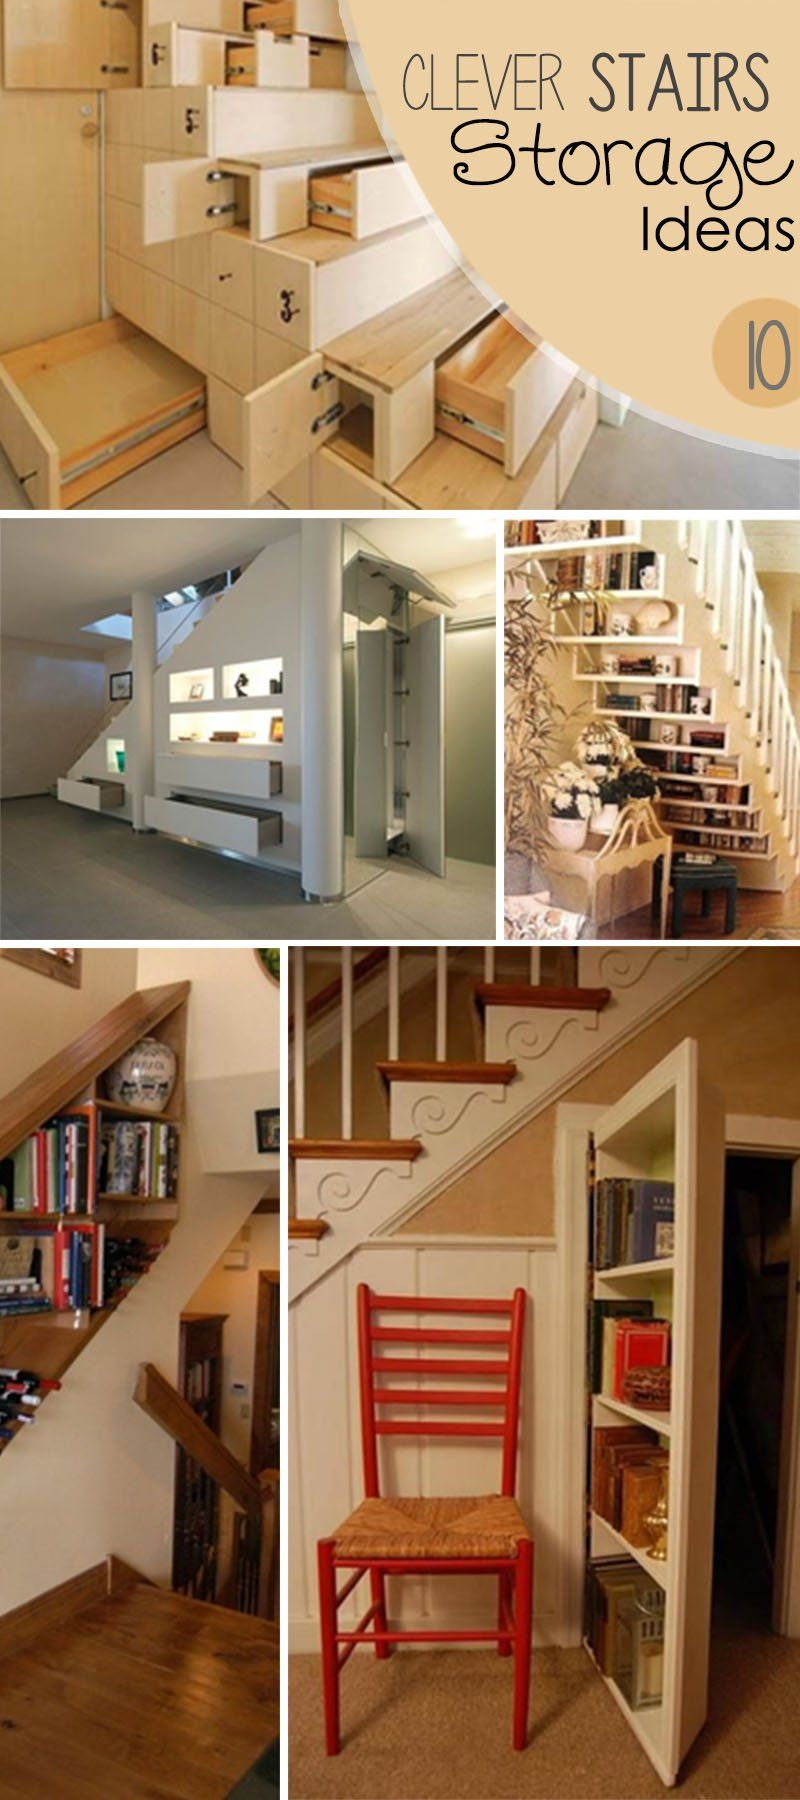 Best Clever Under Stairs Storage Ideas Tiny Homes Space 400 x 300